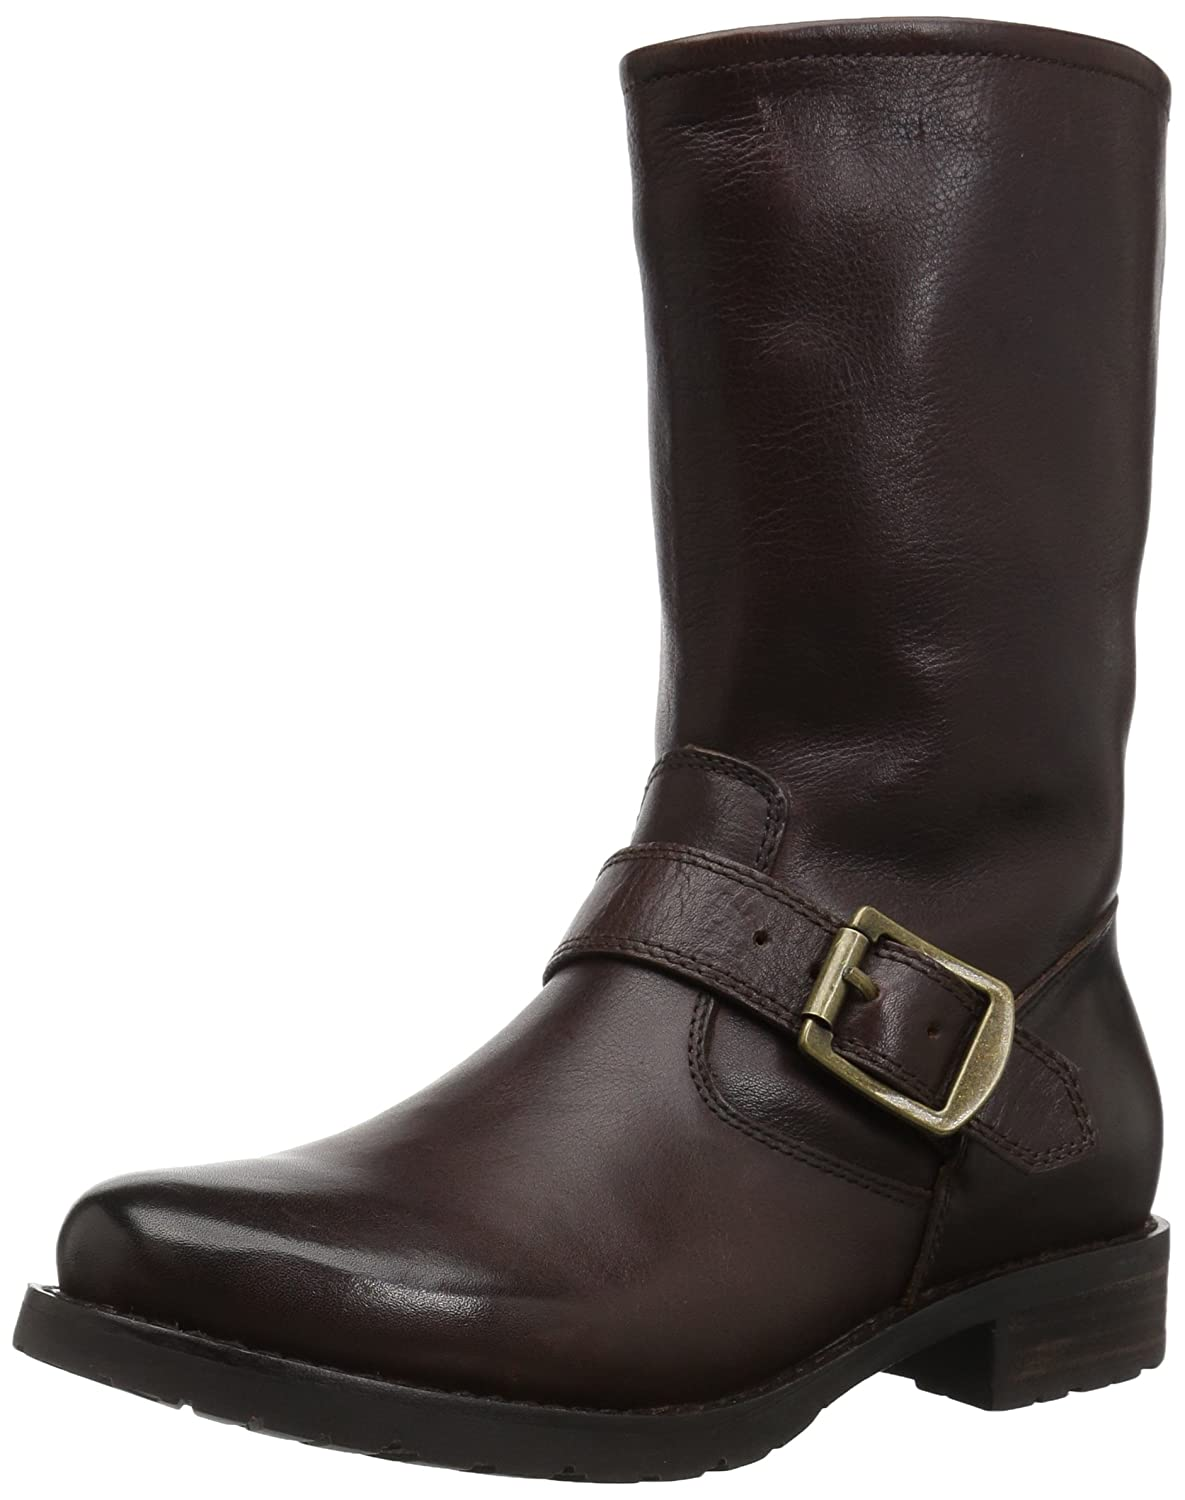 206 Collective Women's Brinnon Moto Boot B01N4WHOQ2 9.5 B(M) US|Dark Brown Leather